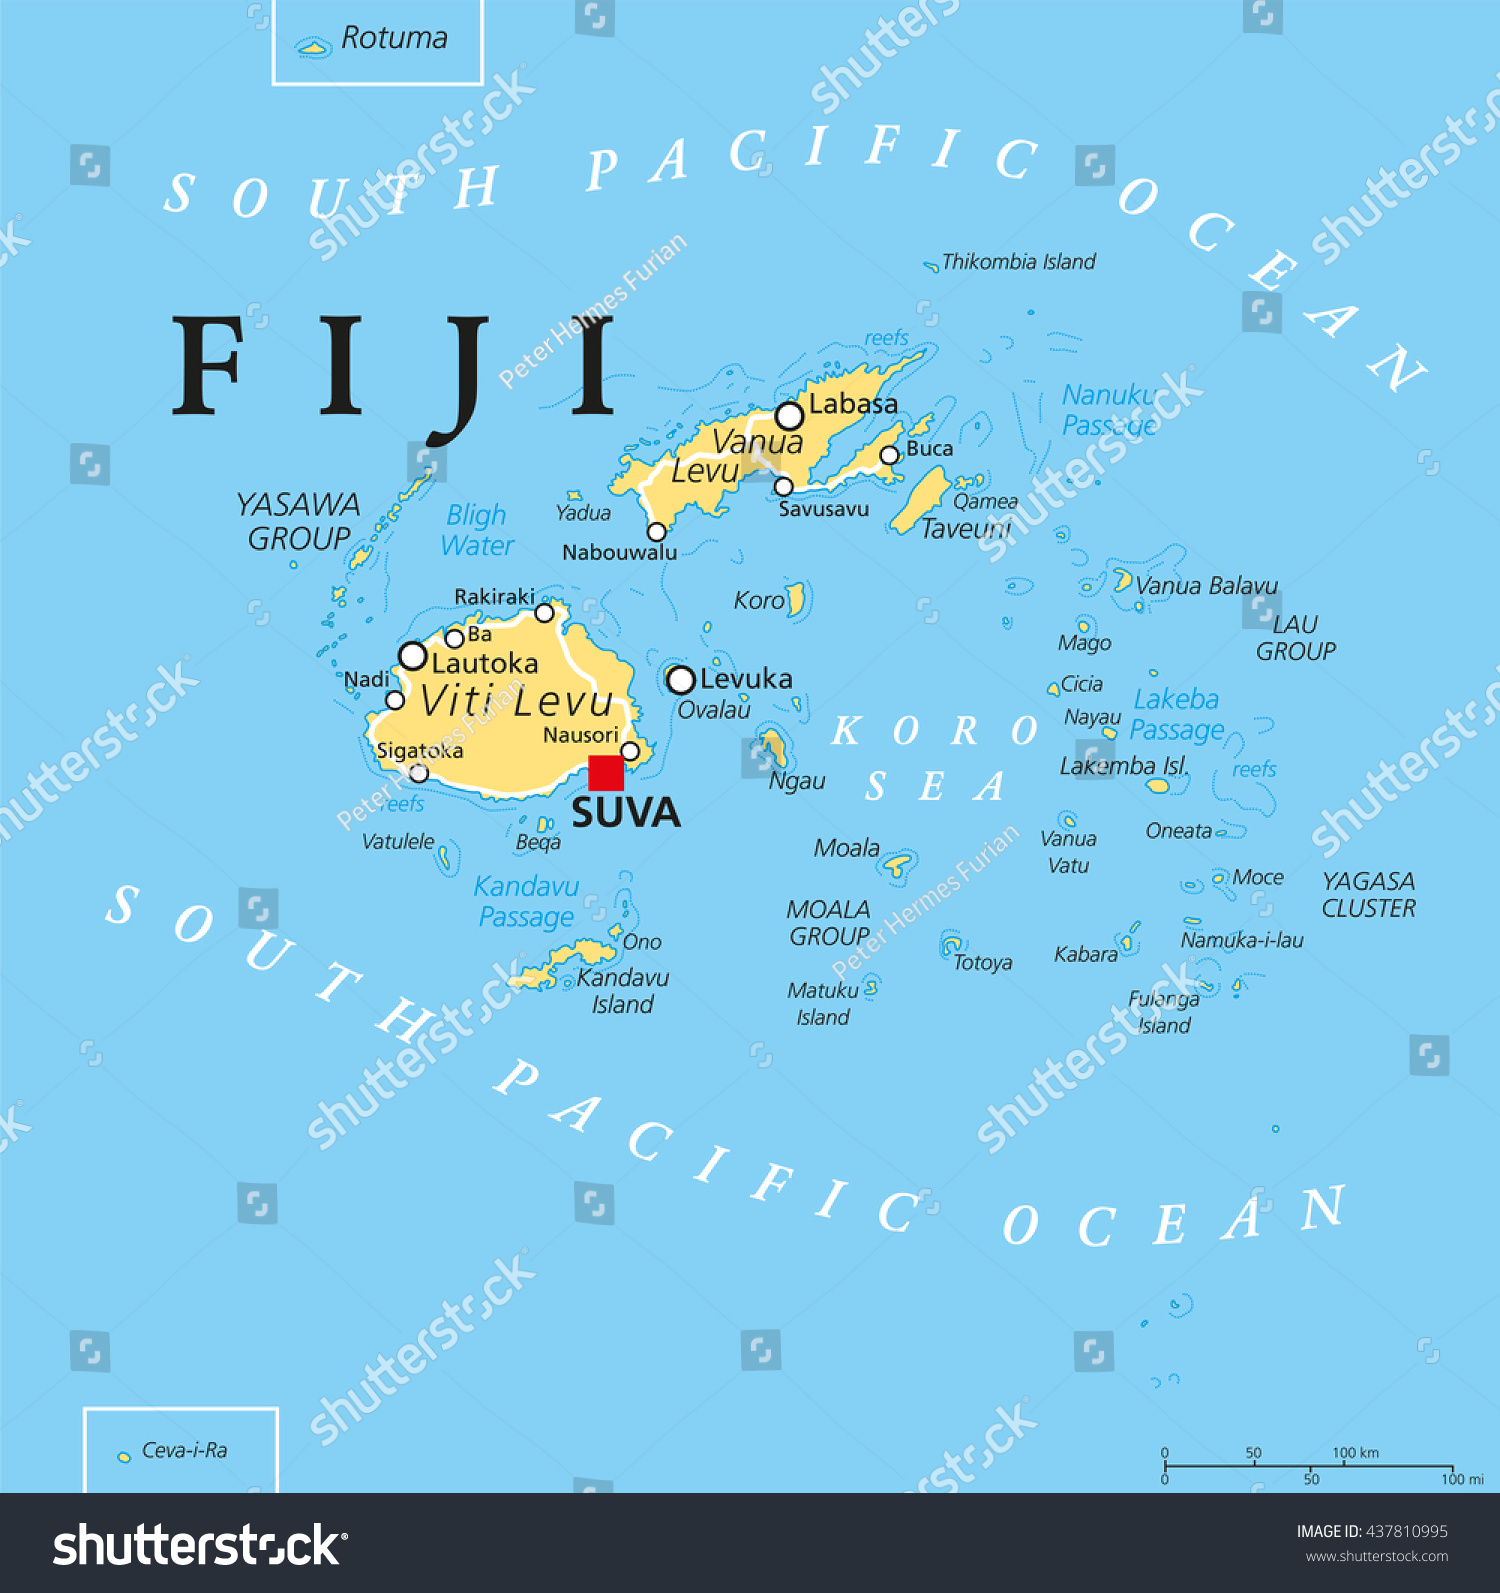 fiji political map with capital suva islands important cities and reefsenglish labeling. fiji political map capital suva islands stock vector